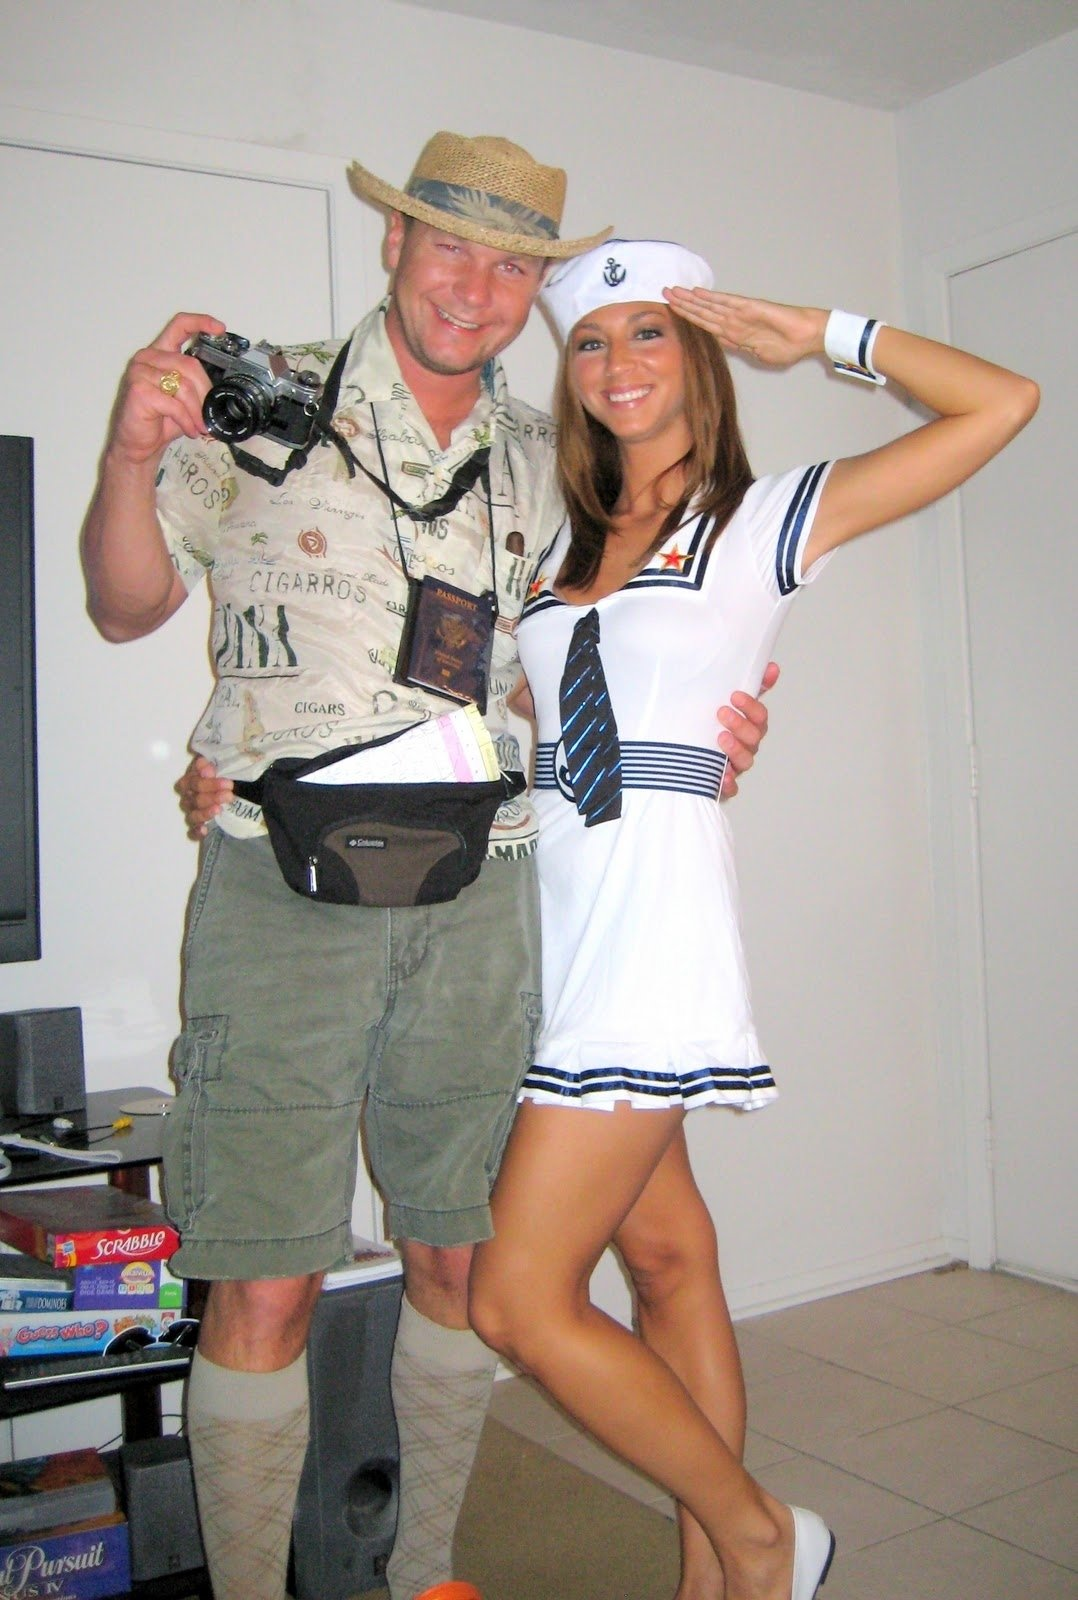 10 Great Adult Homemade Halloween Costume Ideas 56 easy halloween costumes for adults homemade 62 homemade 1 2020